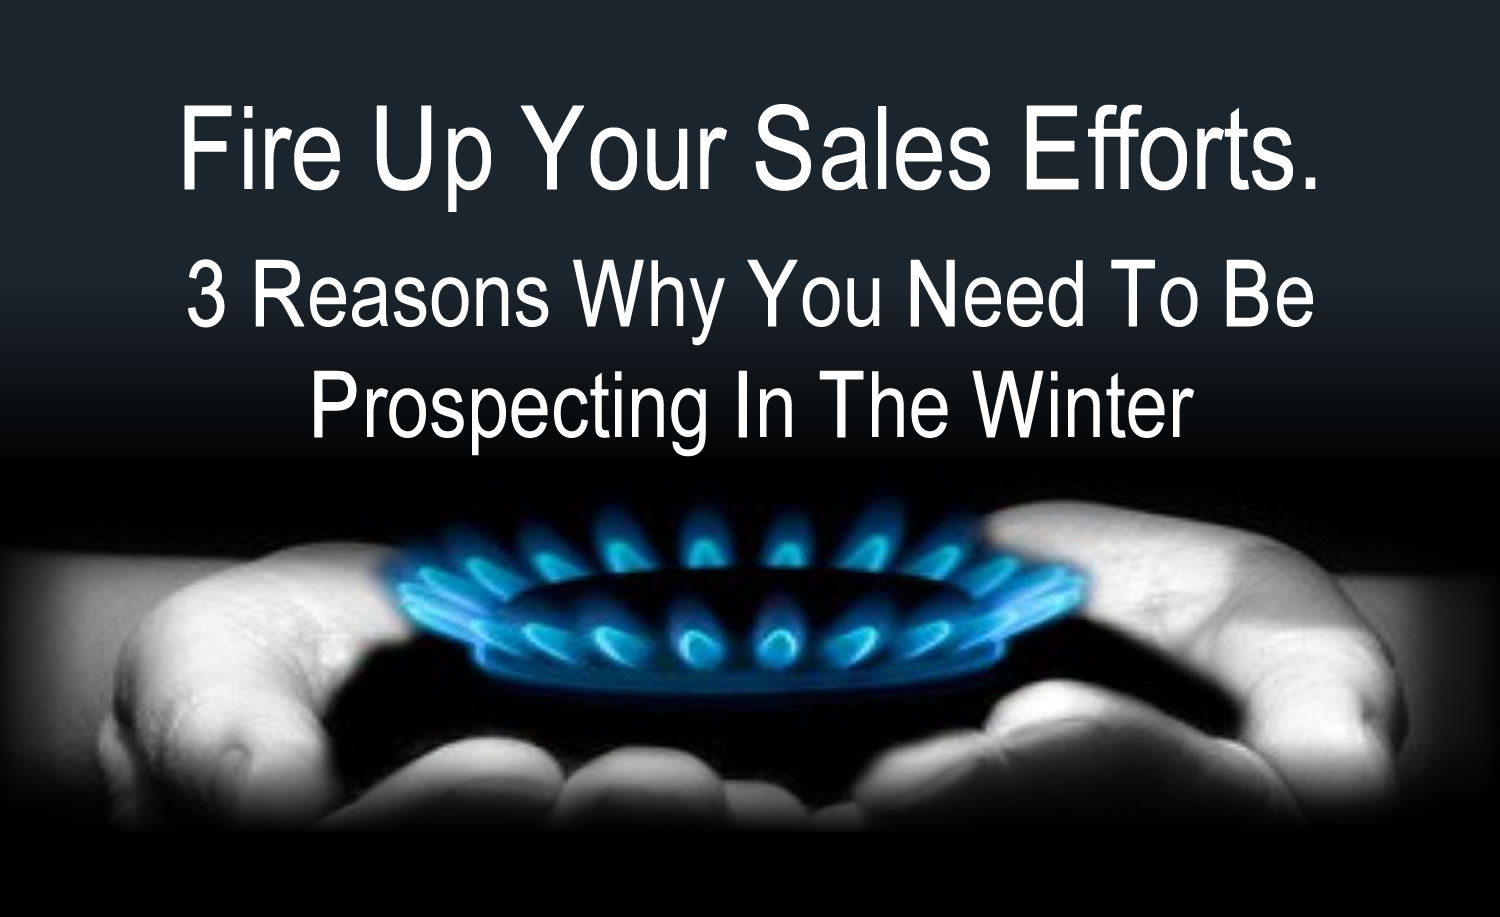 Fire Up Your Sales Efforts. 3 Reasons Why You Need To Be Prospecting In The Winter